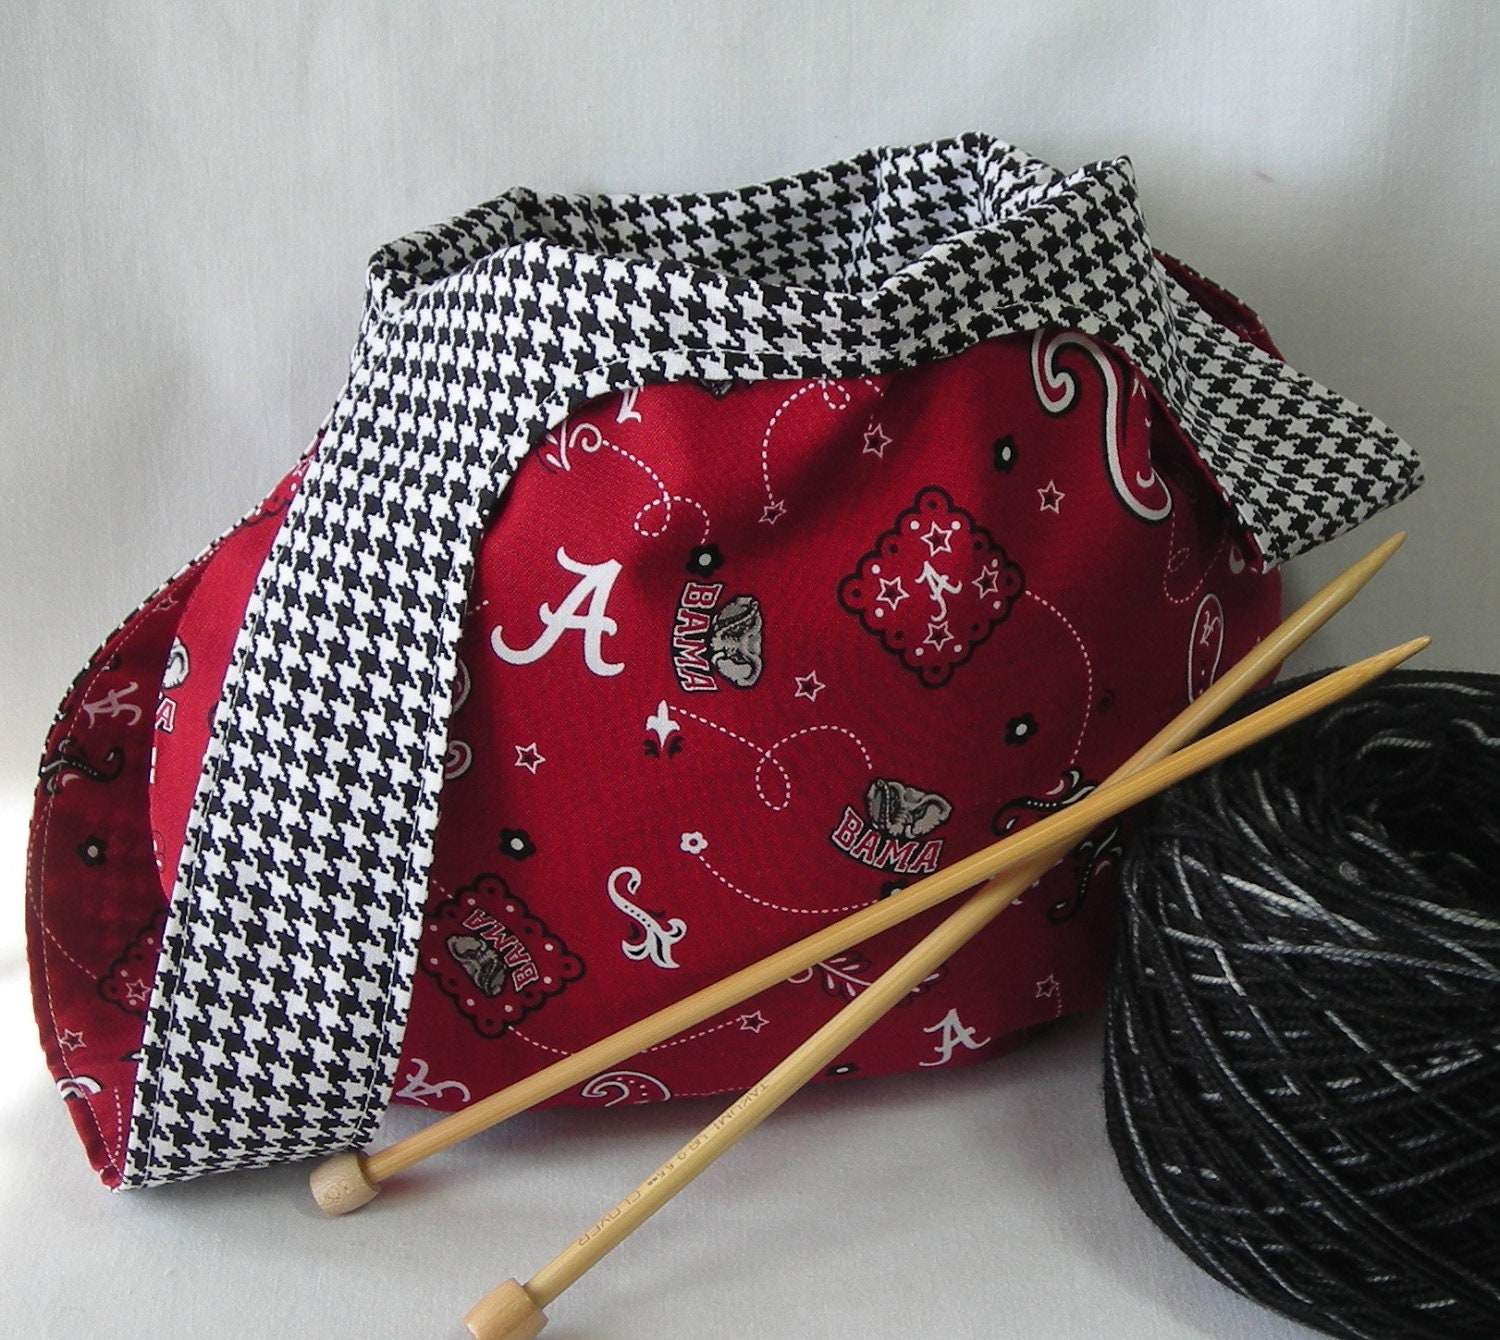 Crochet Japanese Knot Bag Pattern : Japanese knot bag knitting crochet sock project bag Univ.